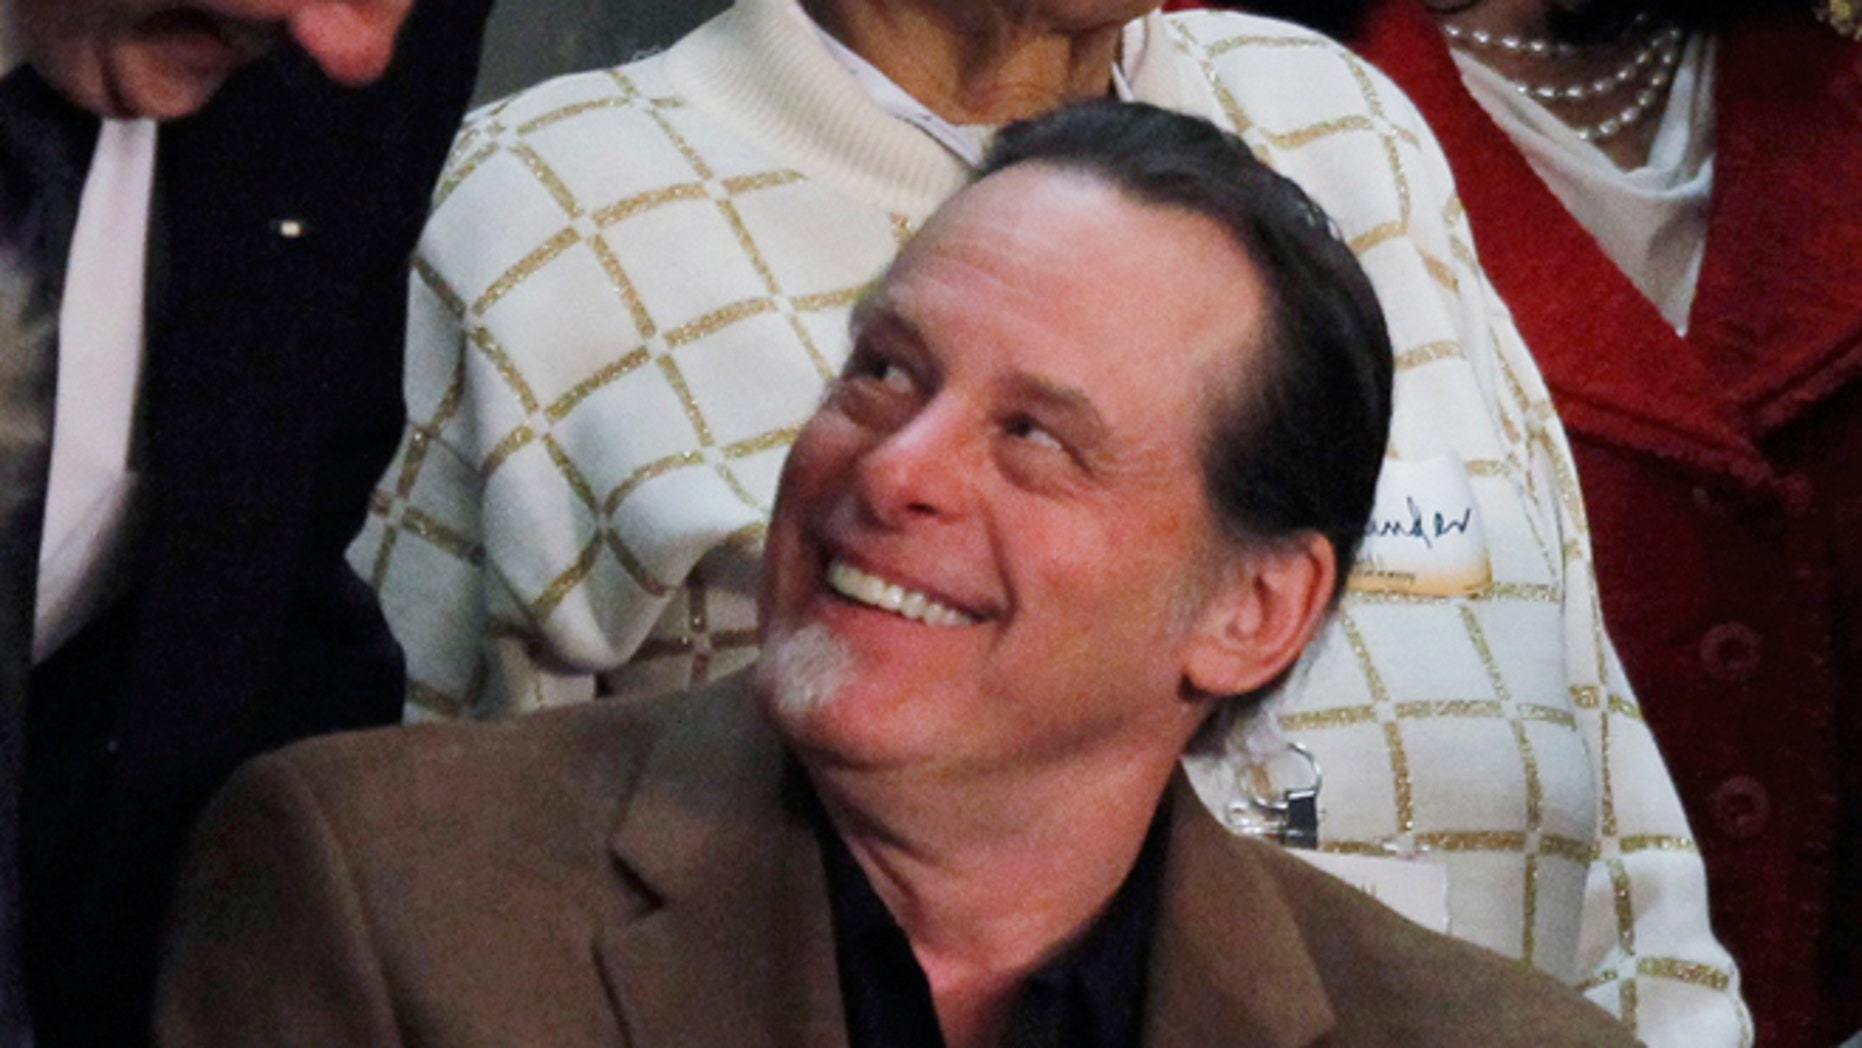 This Feb. 12, 2013 file photo shows musician Ted Nugent, guest of Rep. Steve Stockman, R-Texas, before the State of the Union address by President Barack Obama on Capitol Hill in Washington.